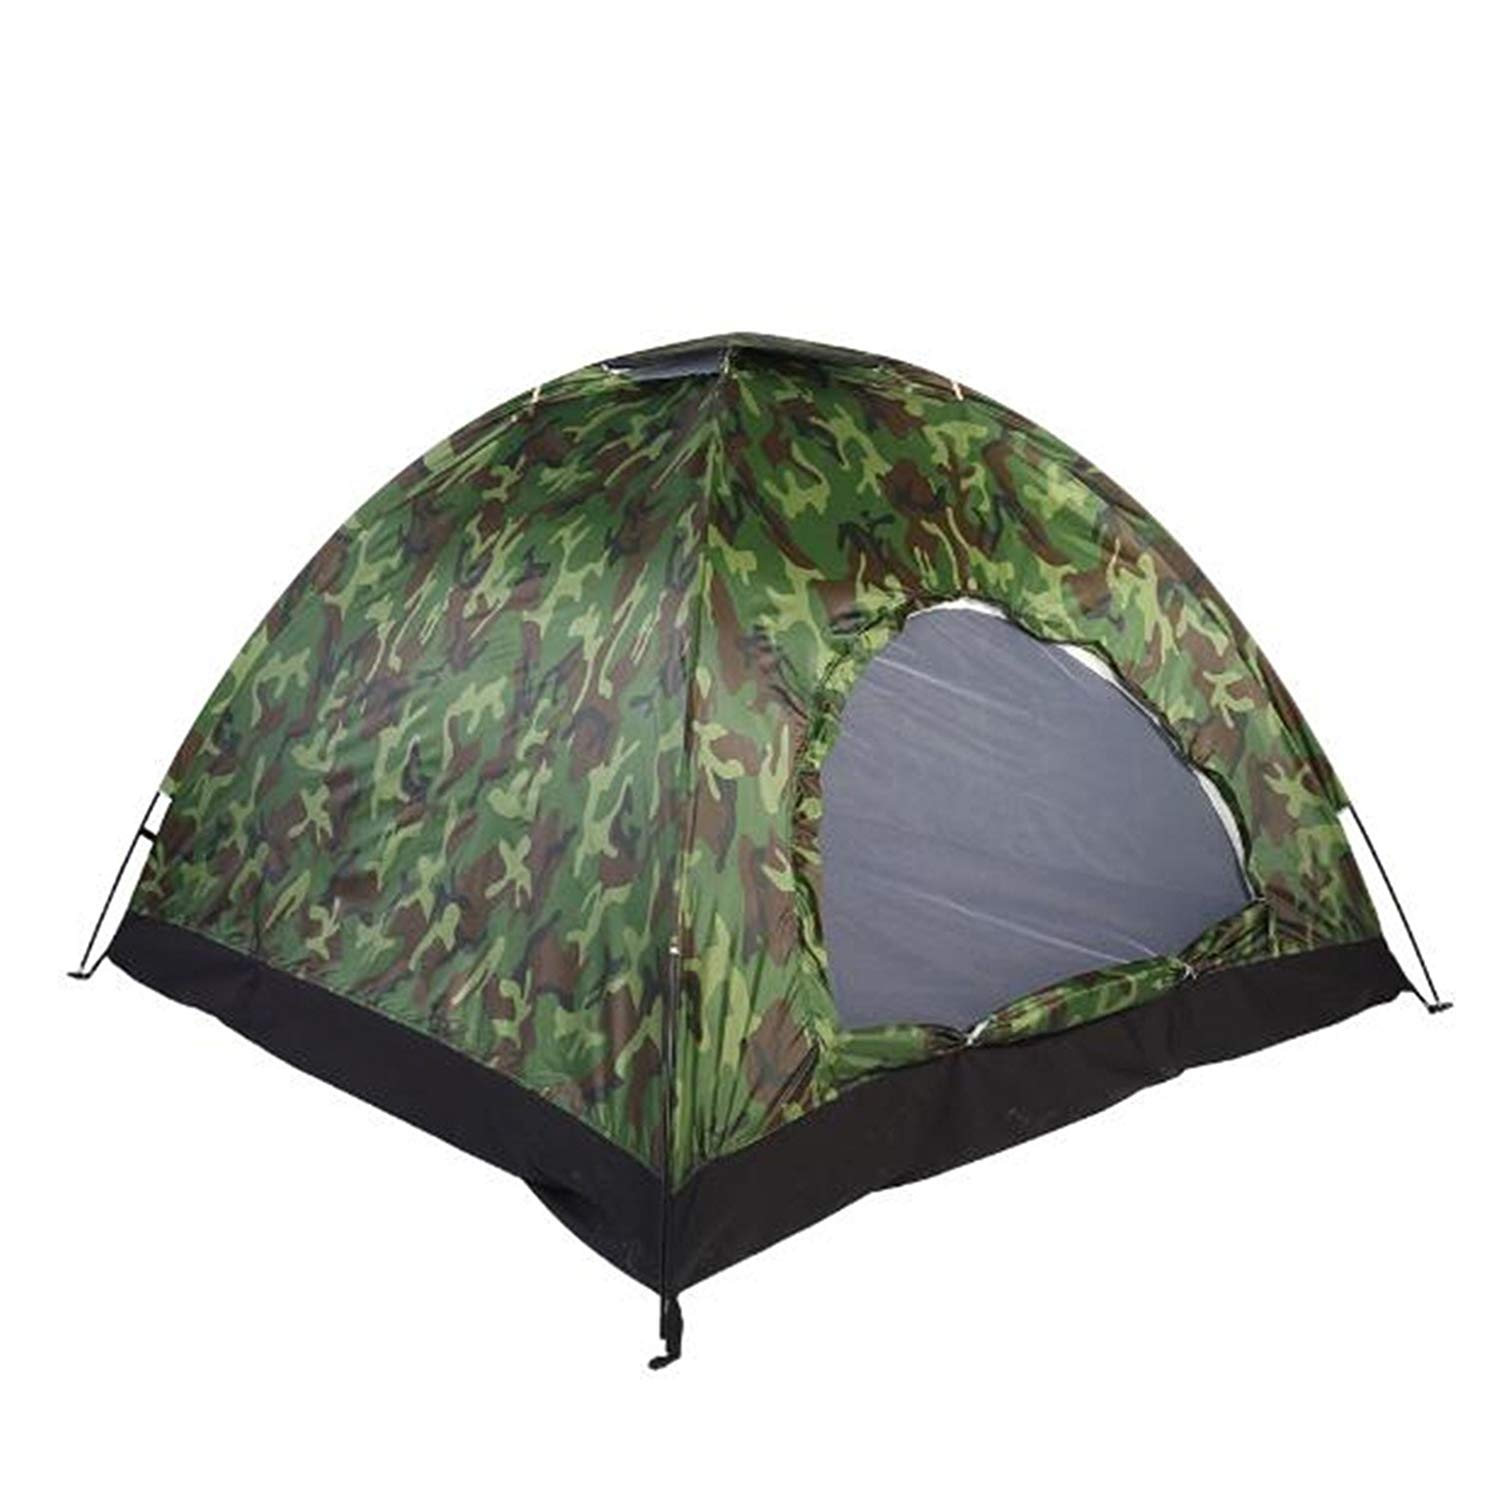 Nutsima 1-4 Person Portable Outdoor Camping Camouflage Tent Outdoor Camping Recreation Double Couple Camping Tent Ultraviolet-proof Tent